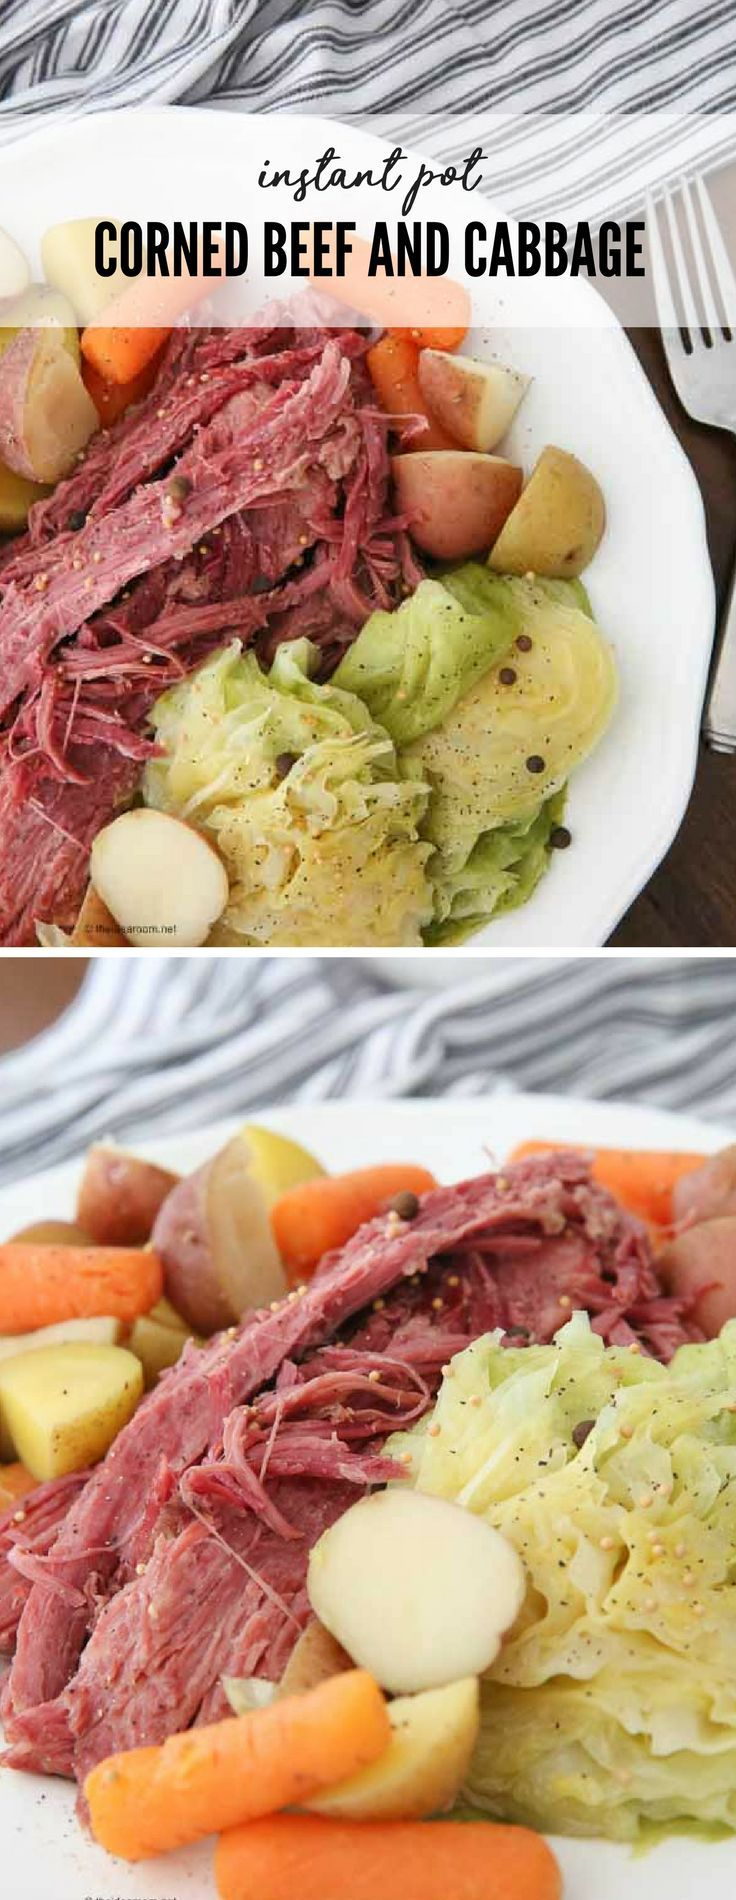 Instant Pot   Recipes   Easy and Quick Dinner Ideas   St. Patrick's Day   Instant Pot Corned Beef and  Cabbage can be on the table in just 1 hour and 30 minutes.